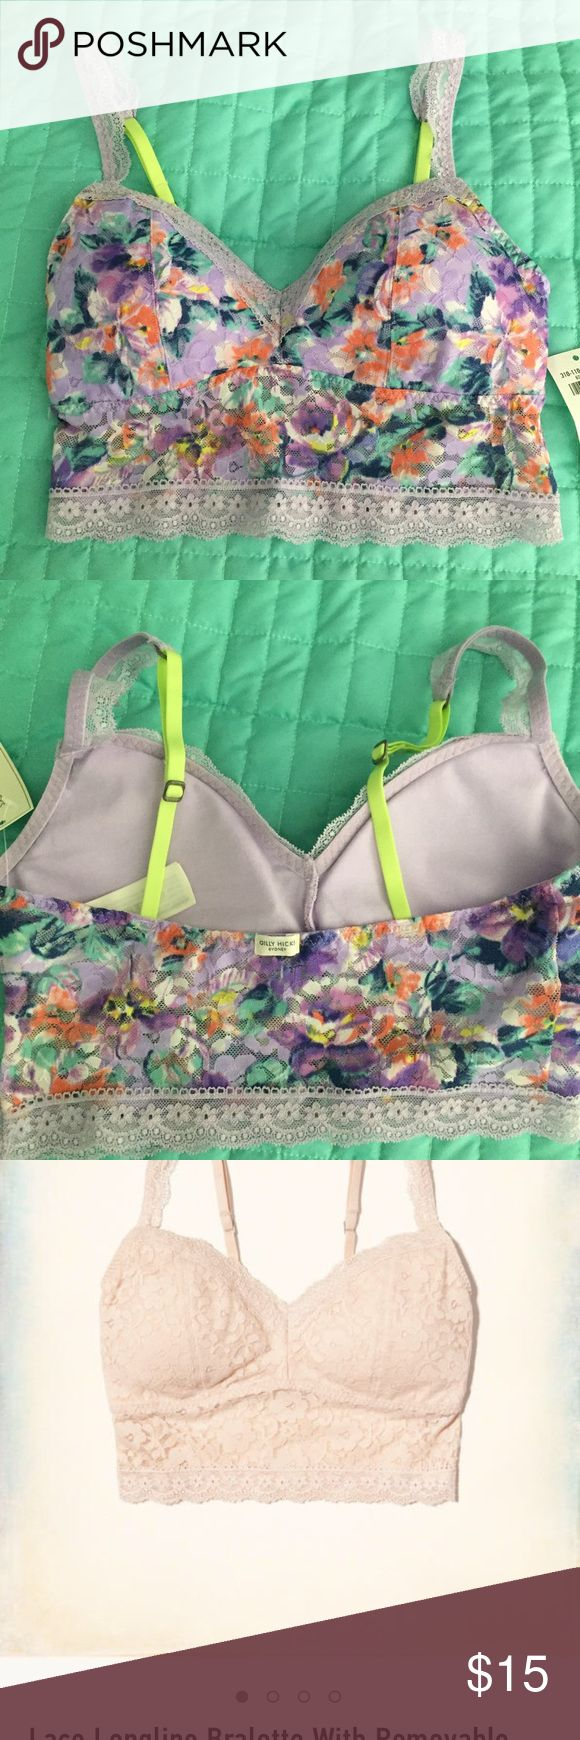 Gilly Hicks bralette•NWT Size SMALL. So pretty! Gilly Hicks longline bralette. Adjustable straps. Gives nice coverage and push up. Could fit from A-B cup. Gilly Hicks Intimates & Sleepwear Bras